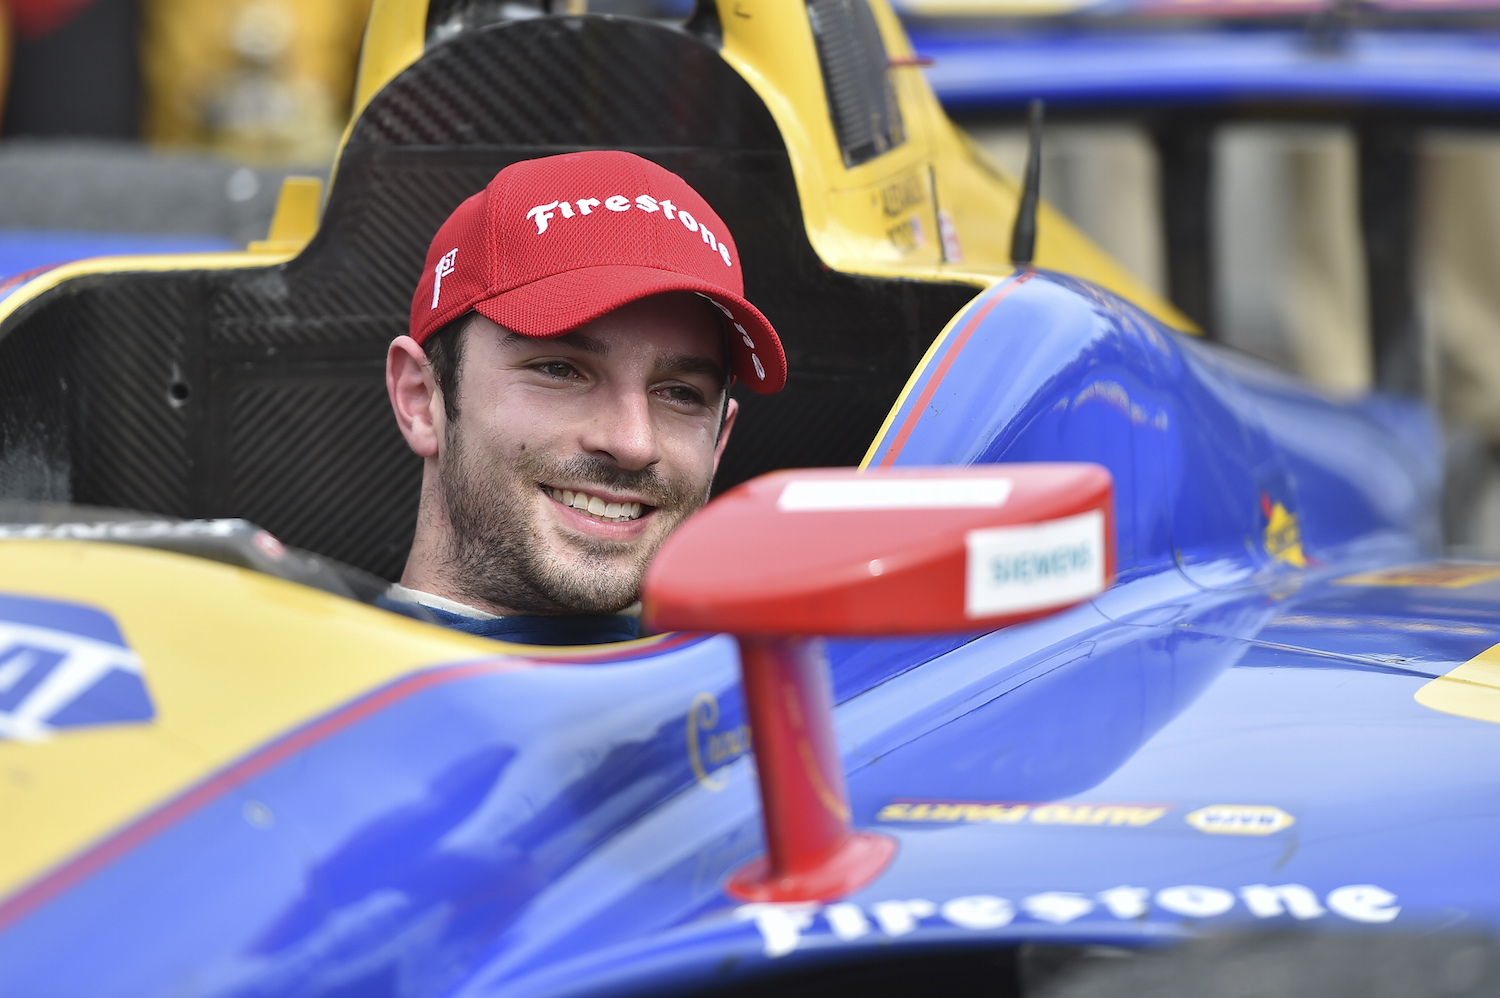 Alexander Rossi is all smiles in Victory Circle after winning the Toyota Grand Prix of Long Beach